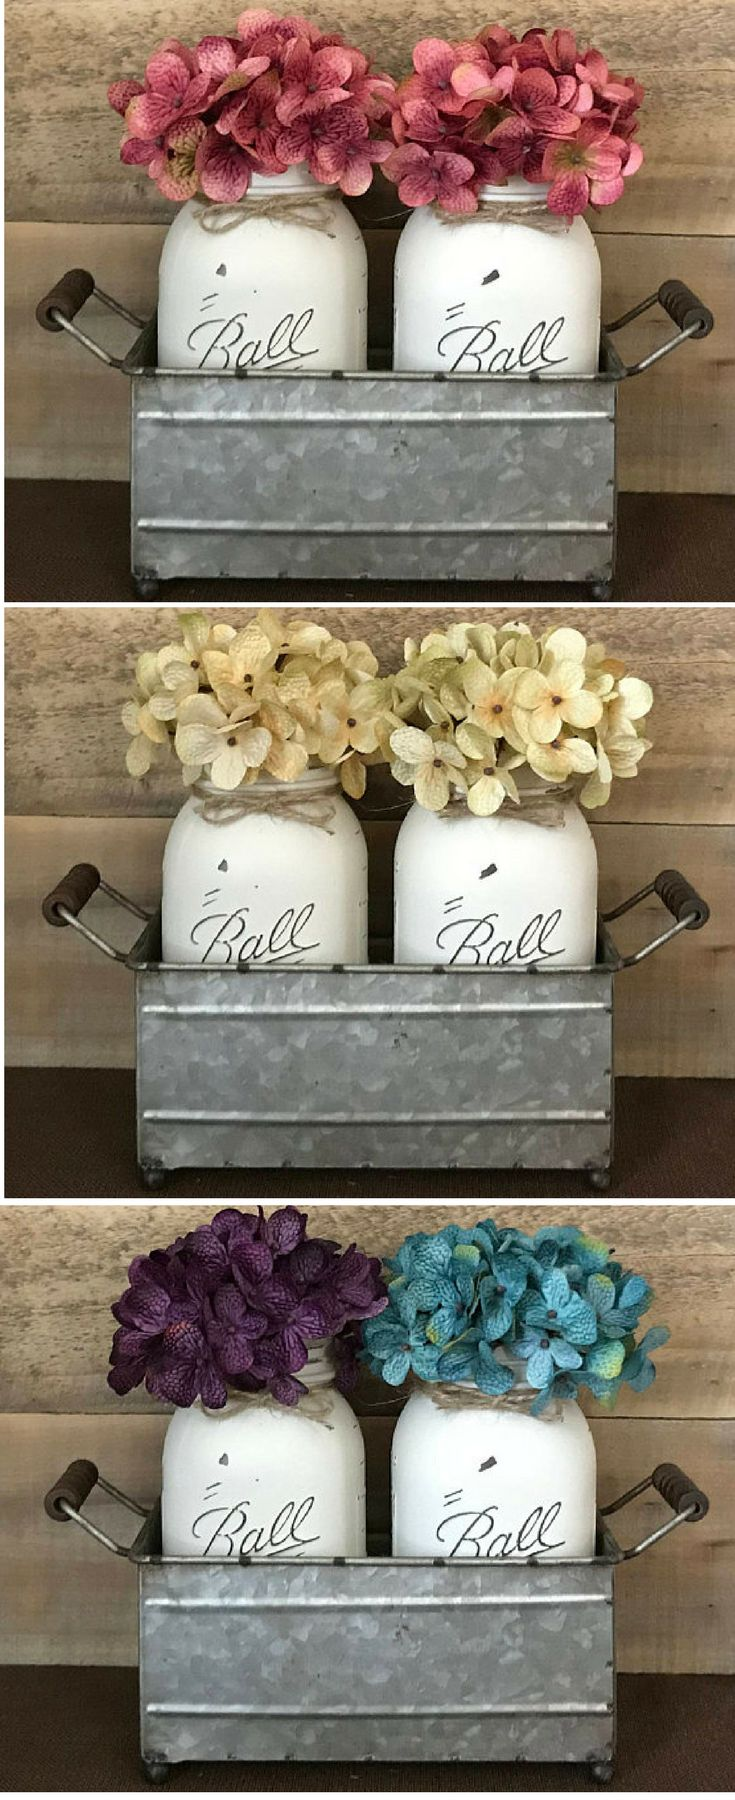 Perfect for dining table, kitchen table or island, coffee table, mantel....adds a pop of color and a touch of spring! Love hydrangeas! Mason Jar Centerpiece, Dining Room Centerpiece, Farmhouse decor, Rustic decor, Home Decor, Shabby Chic, living room deco